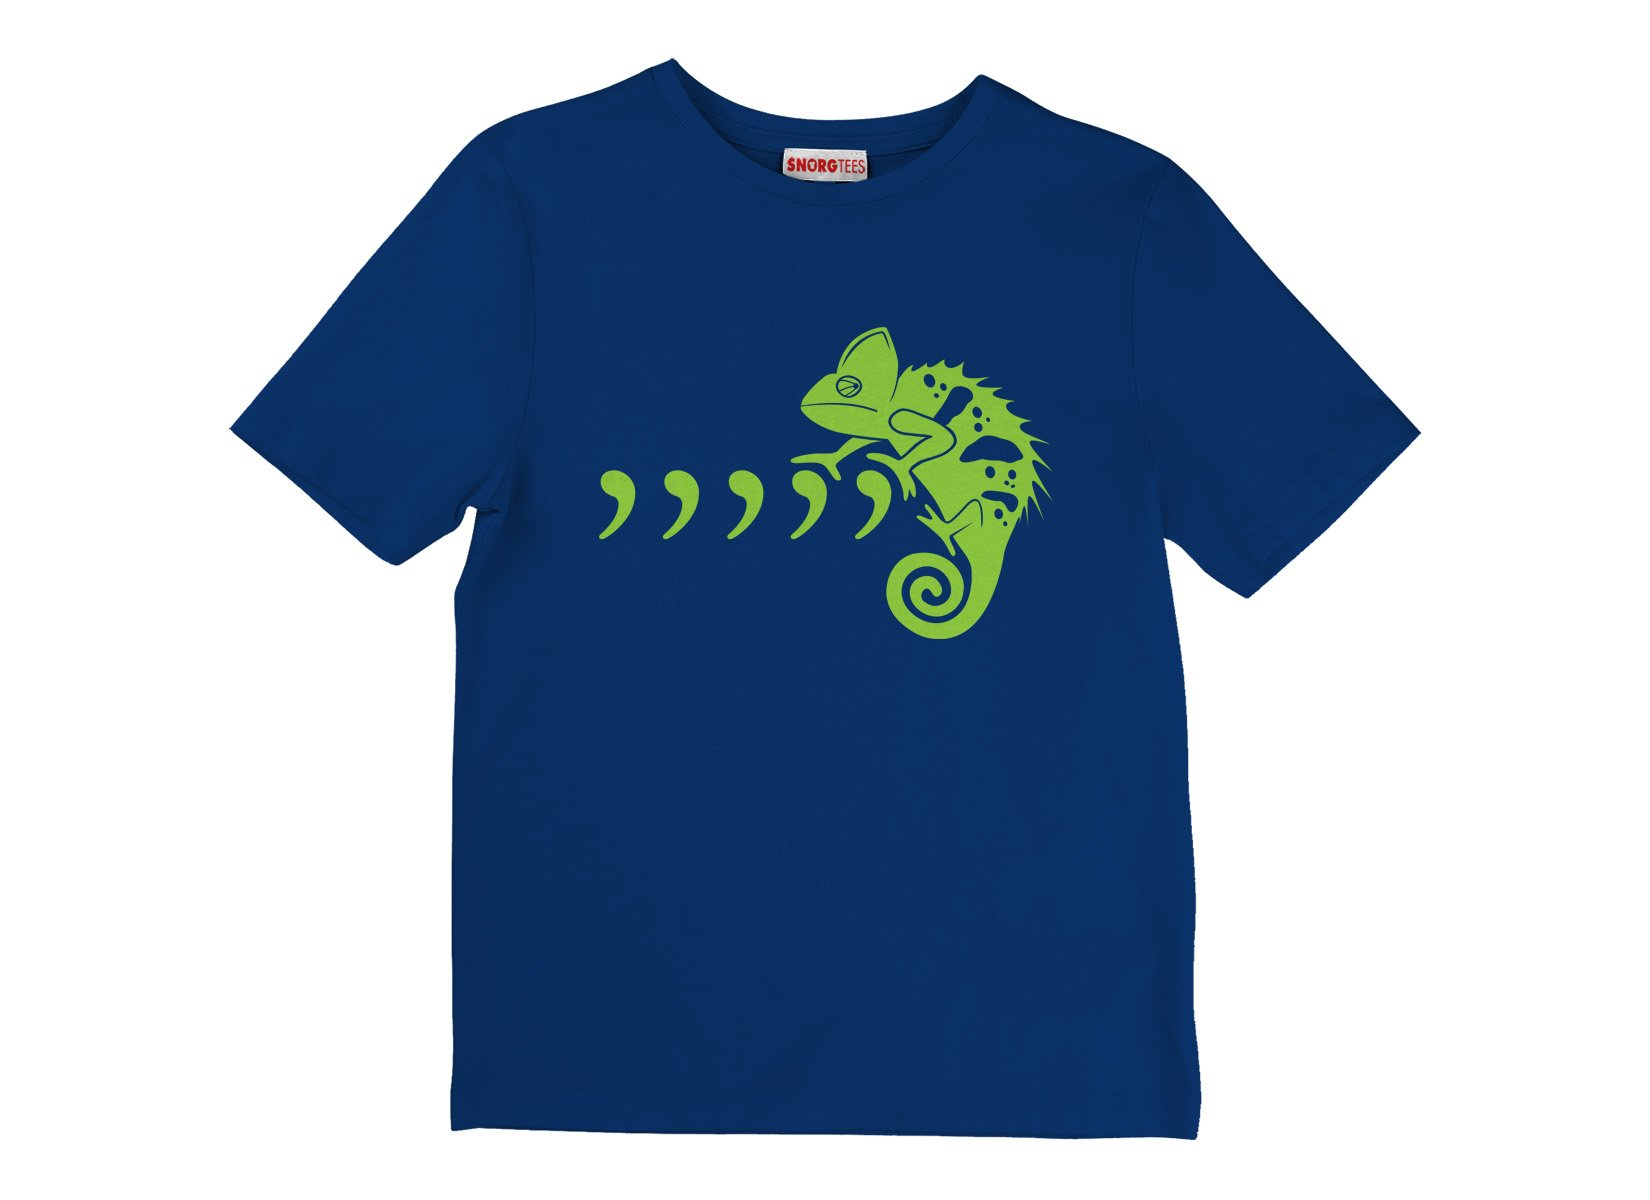 Comma Chameleon on Kids T-Shirt